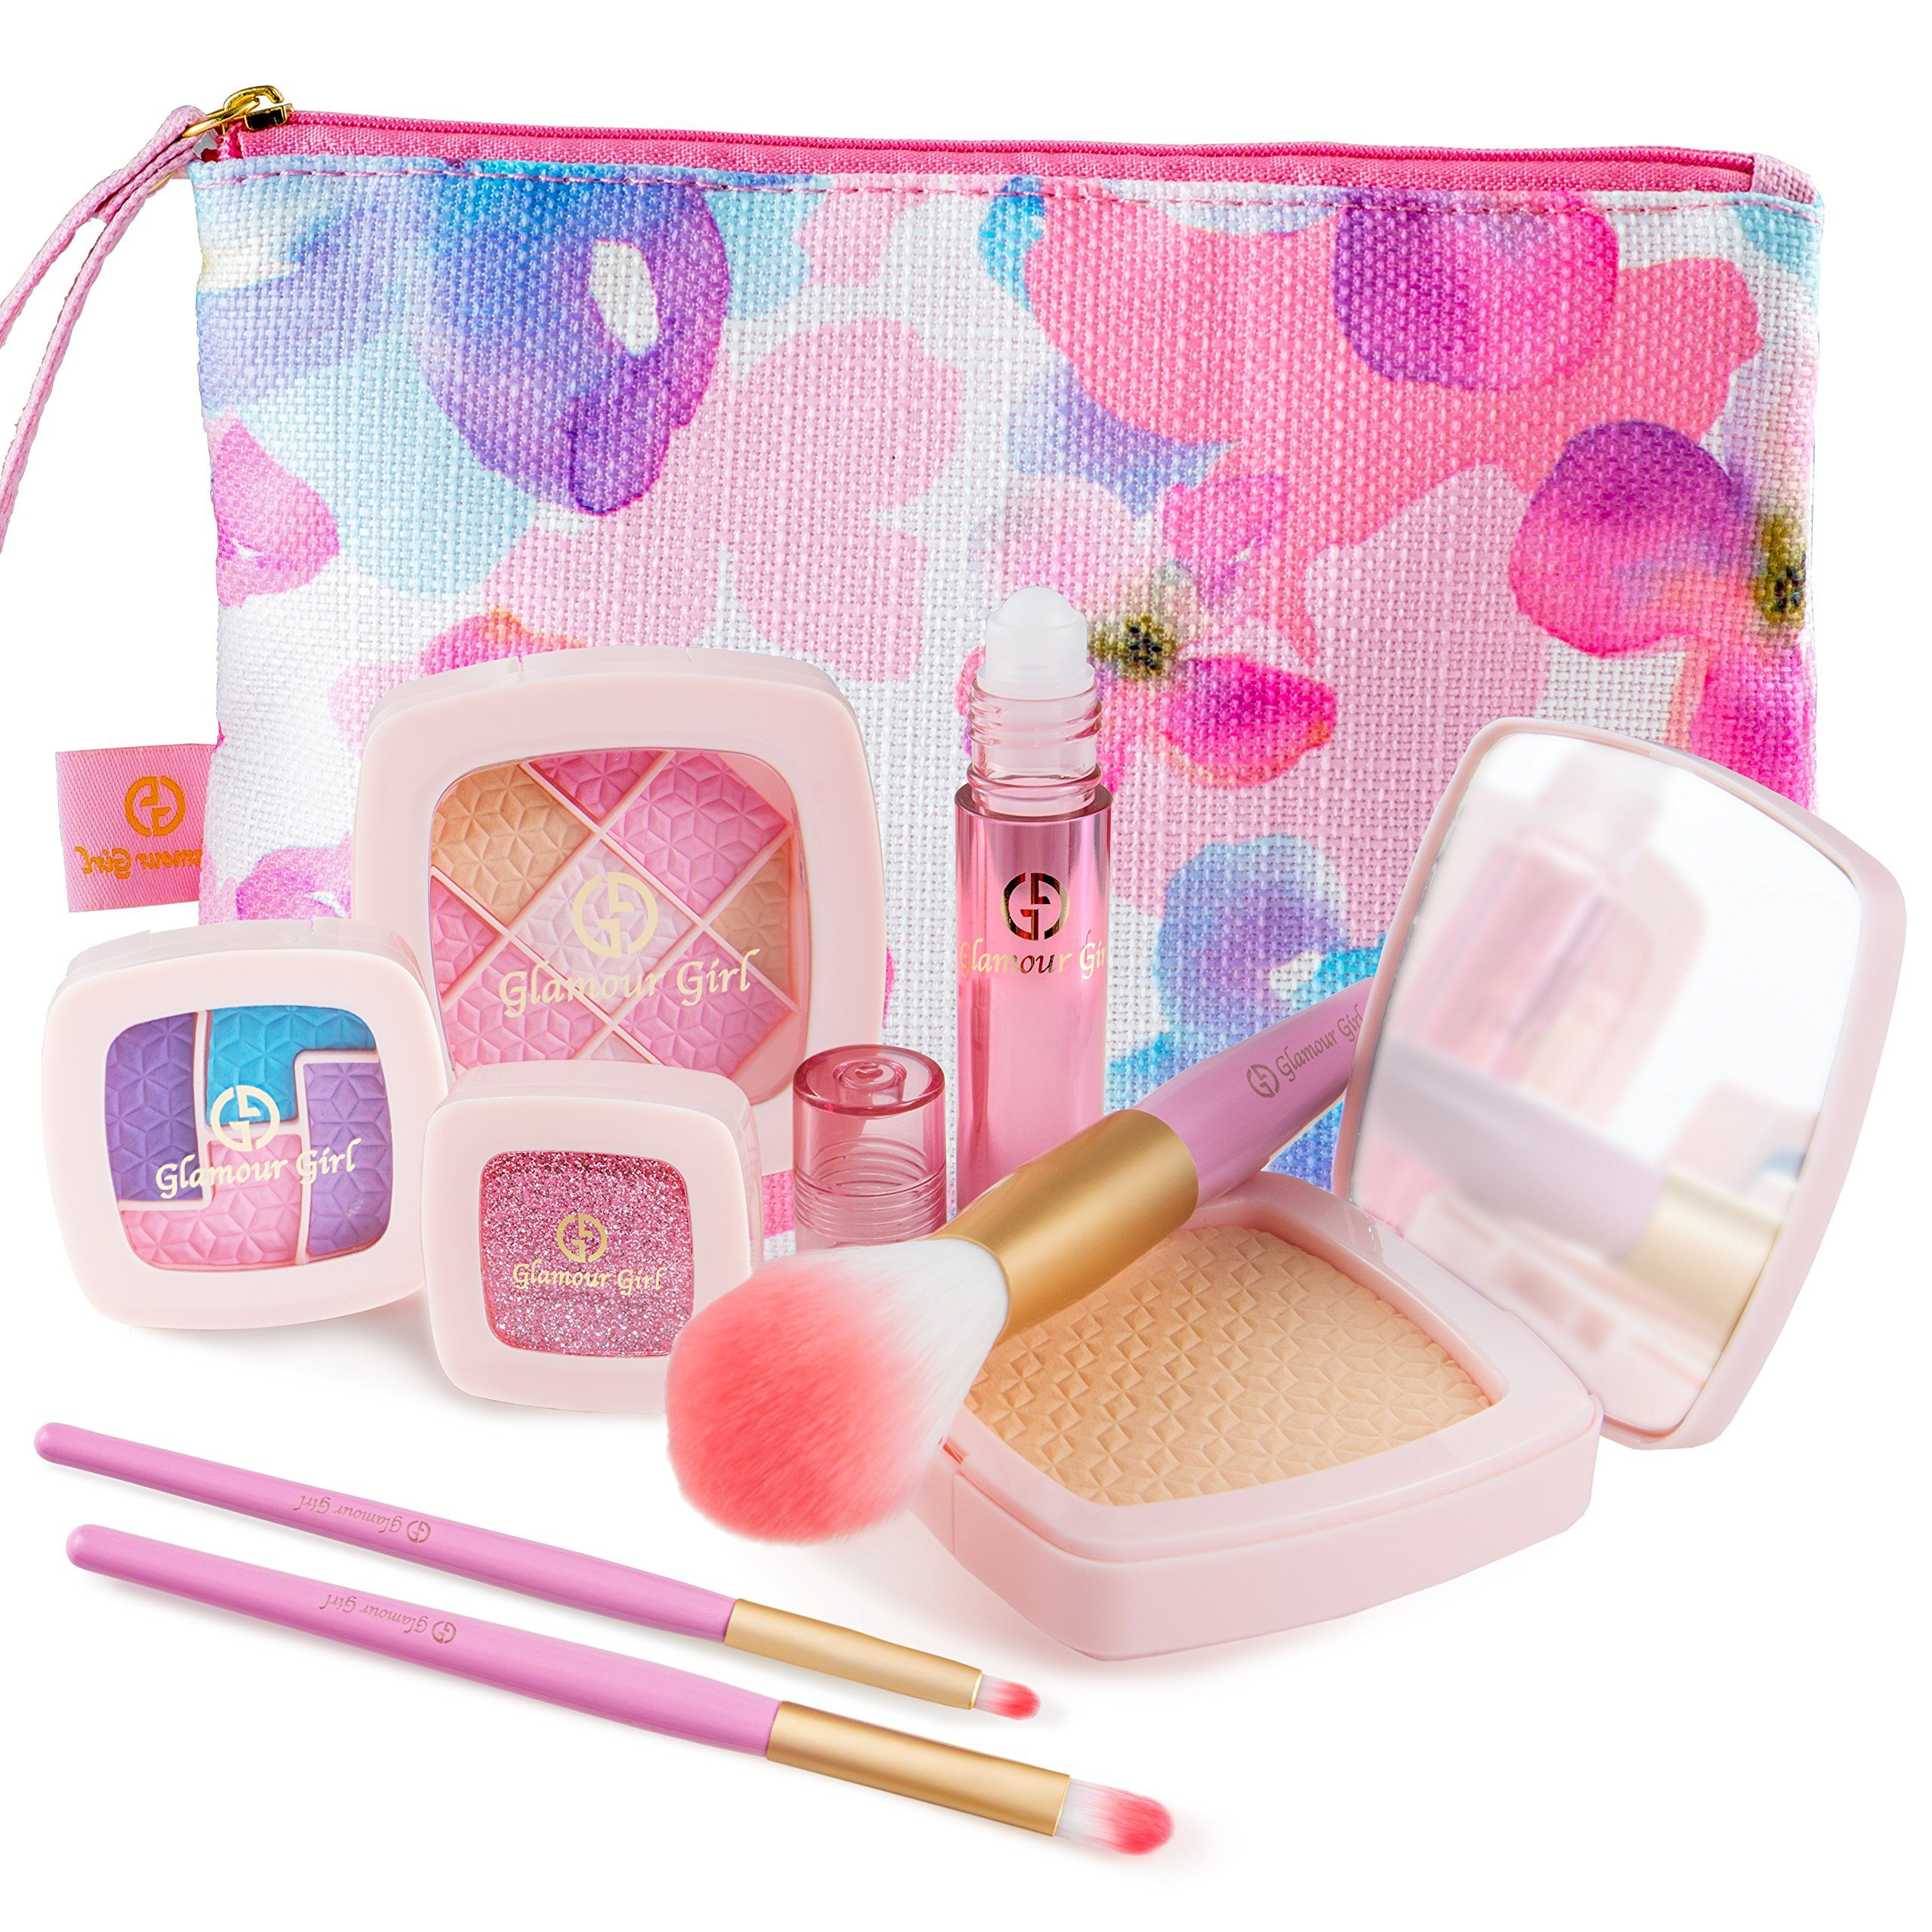 Toys For Kids Girls : Amazon makeup set for children by glamour girl